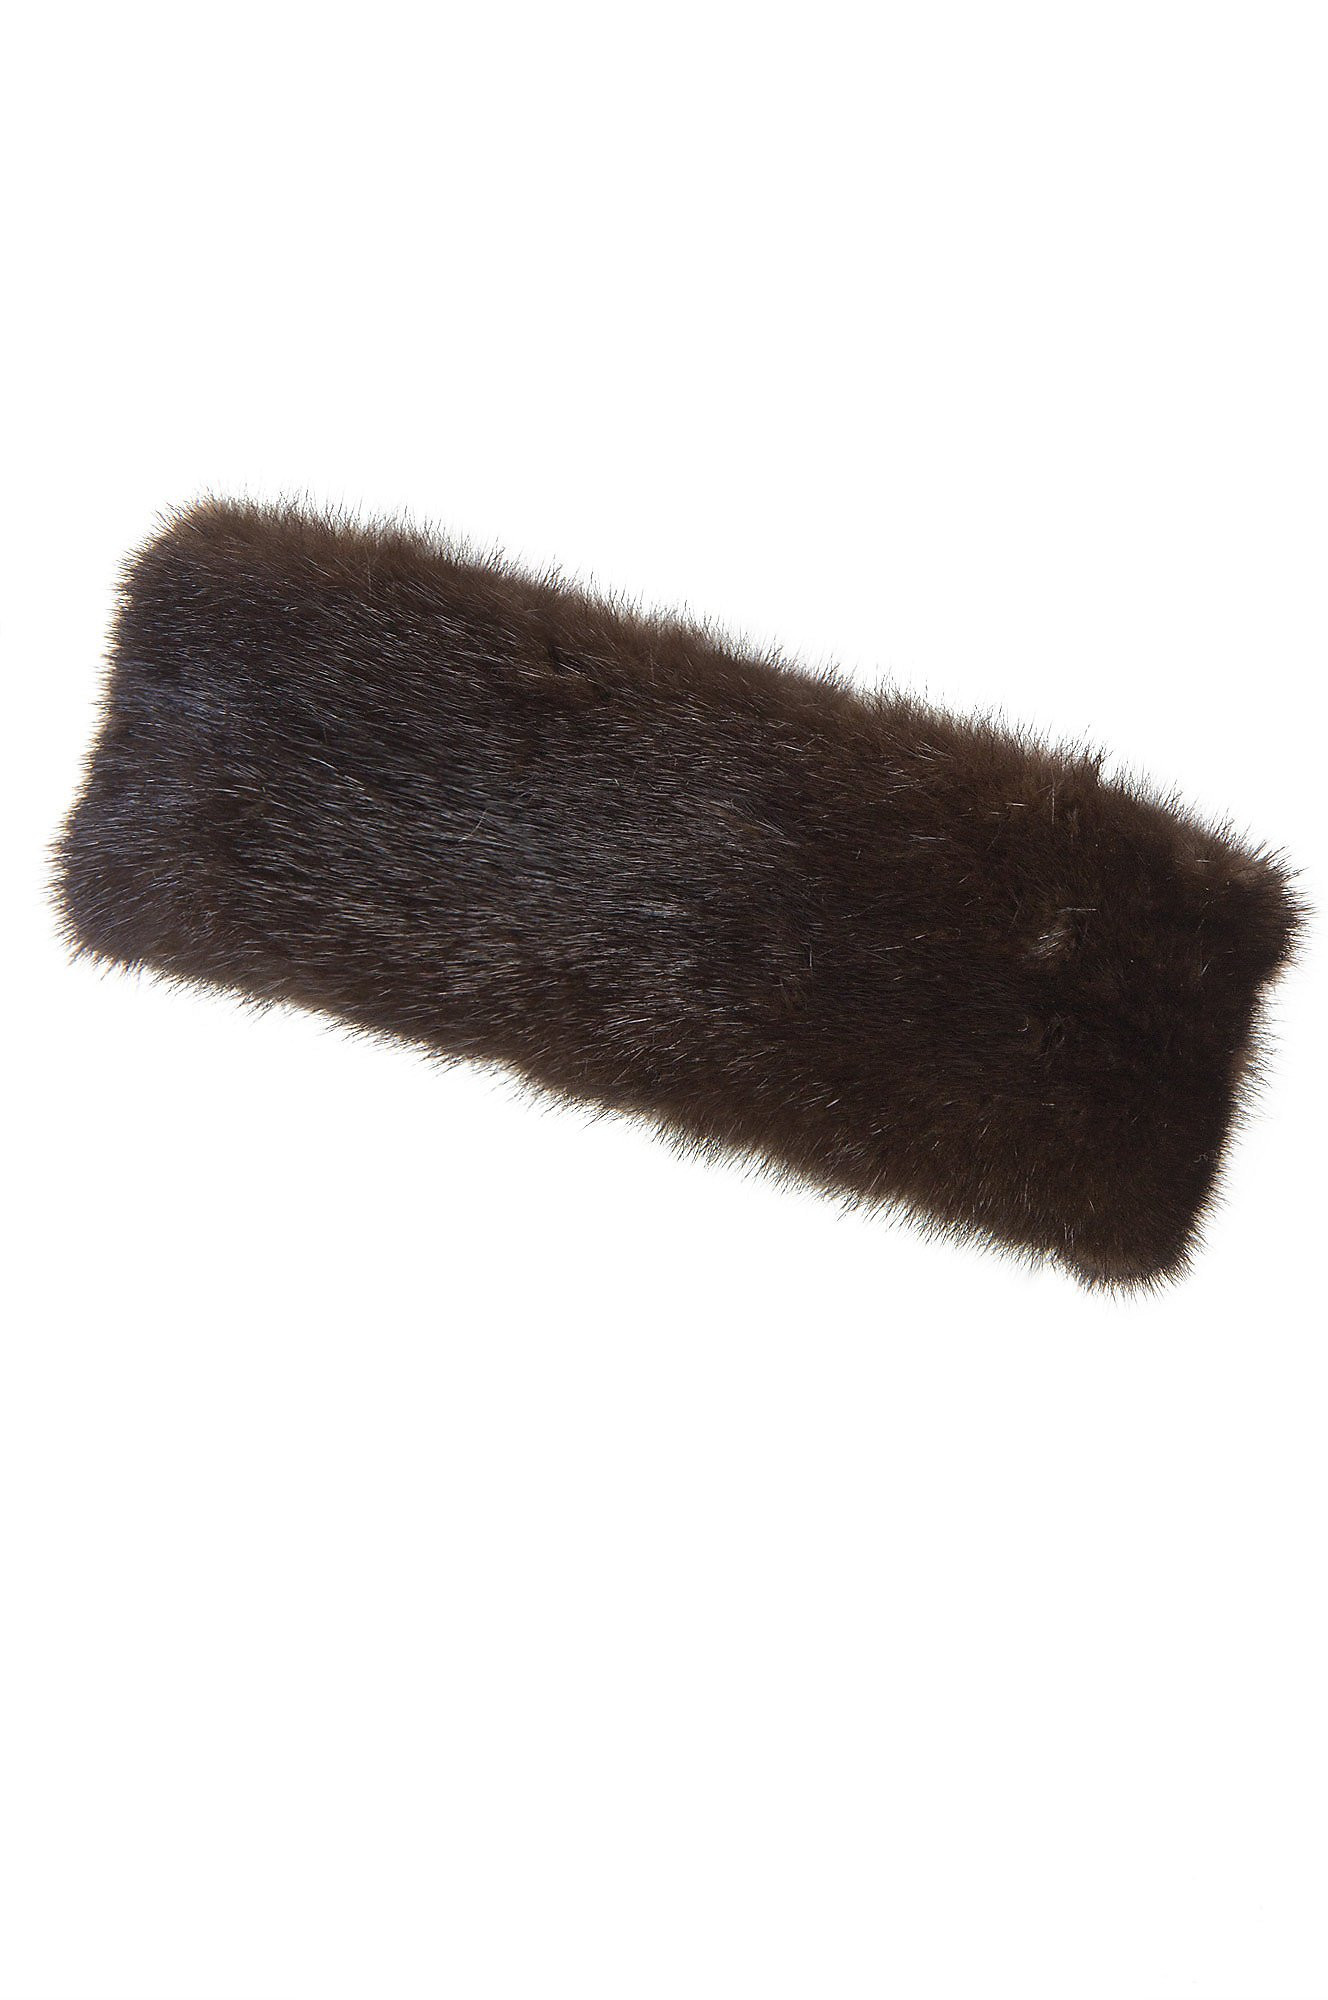 Mink Fur Headband, MAHOGANY, Size 1 Size by Overland Sheepskin Co (Image #1)